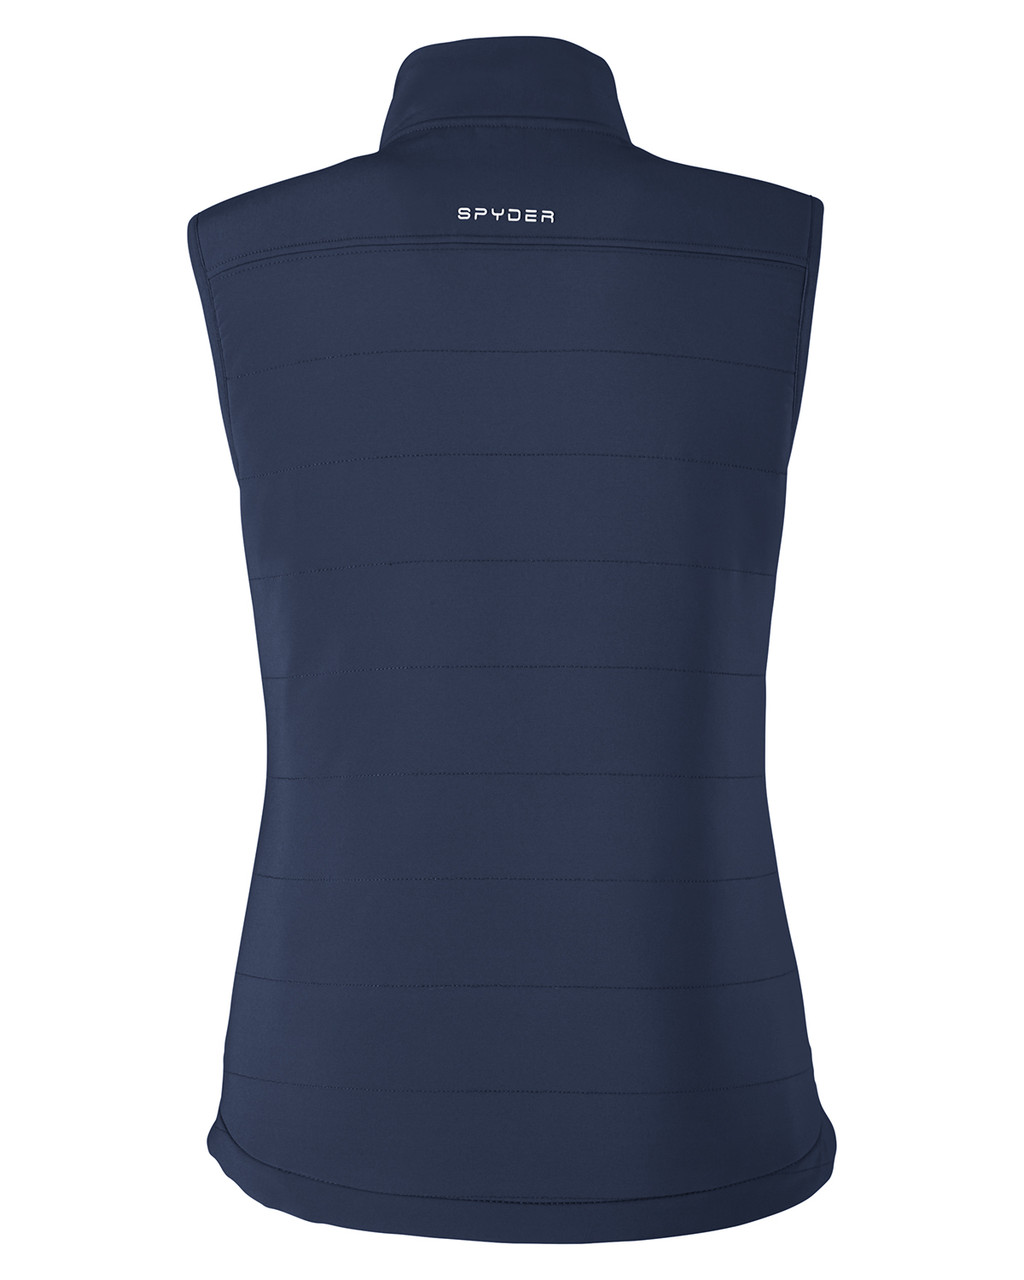 Frontier - Back, S17029 Spyder Ladies' Transit Vest | BlankClothing.ca